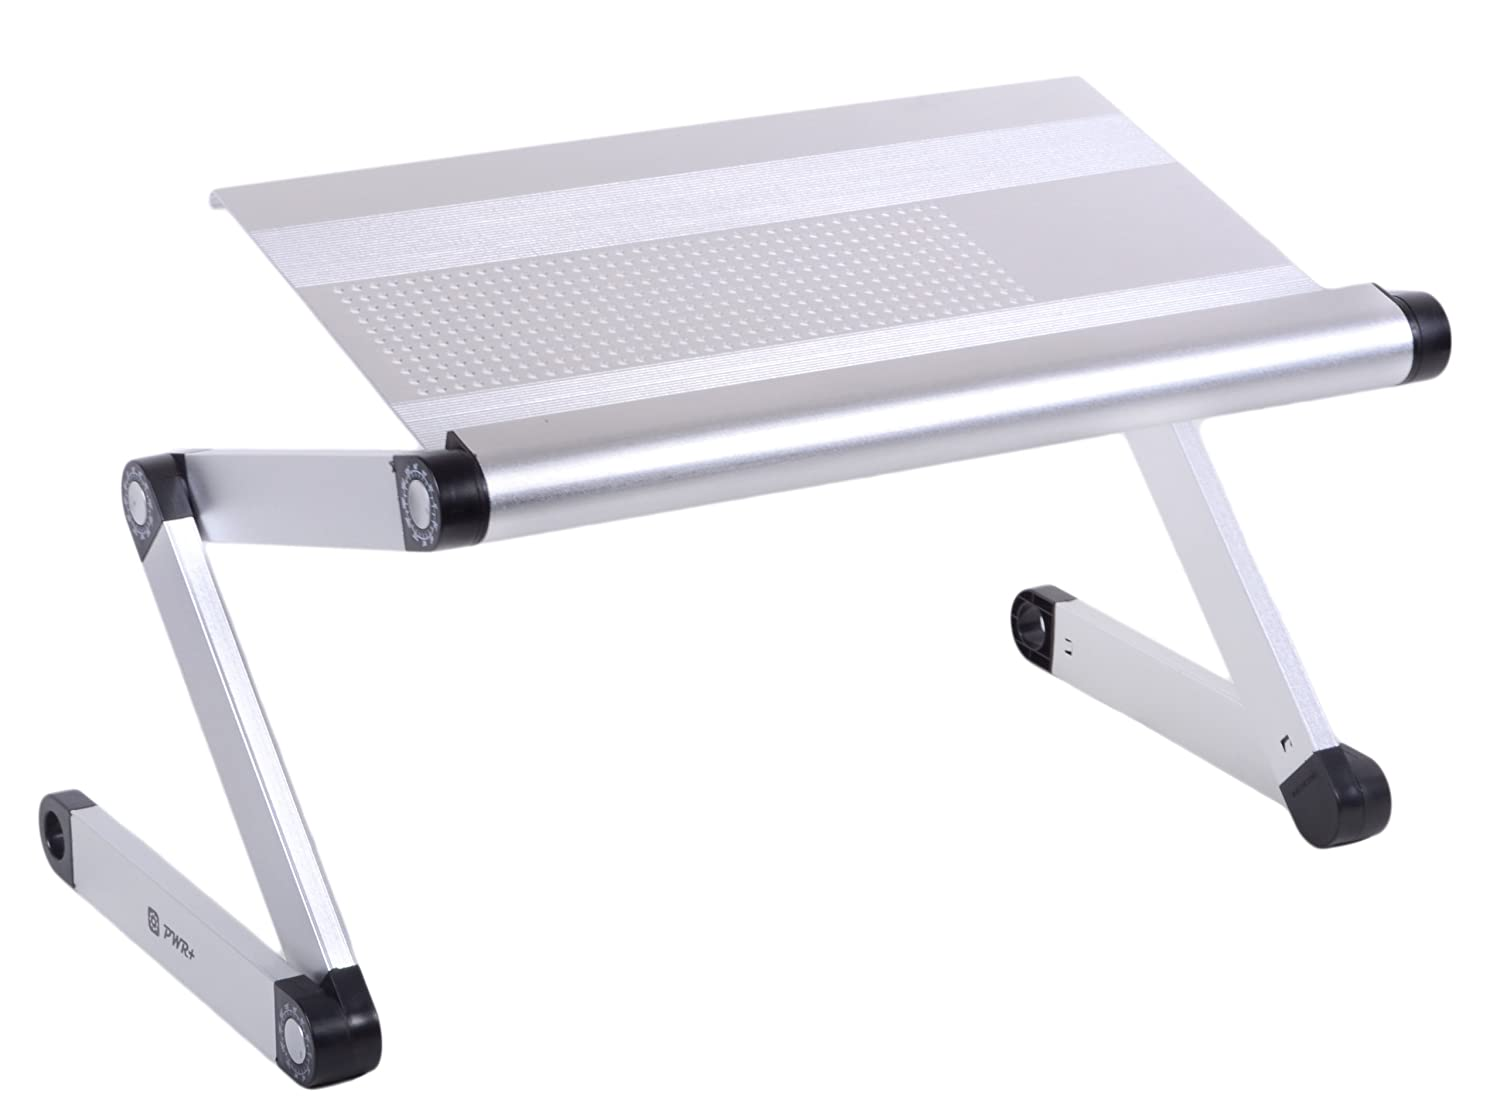 Pwr+ Portable Folding Vented Laptop Notebook Book Table Desk Tray Stand - Aluminium Alloy - Adjustable-Angle Legs - (Vented Silver) at Sears.com